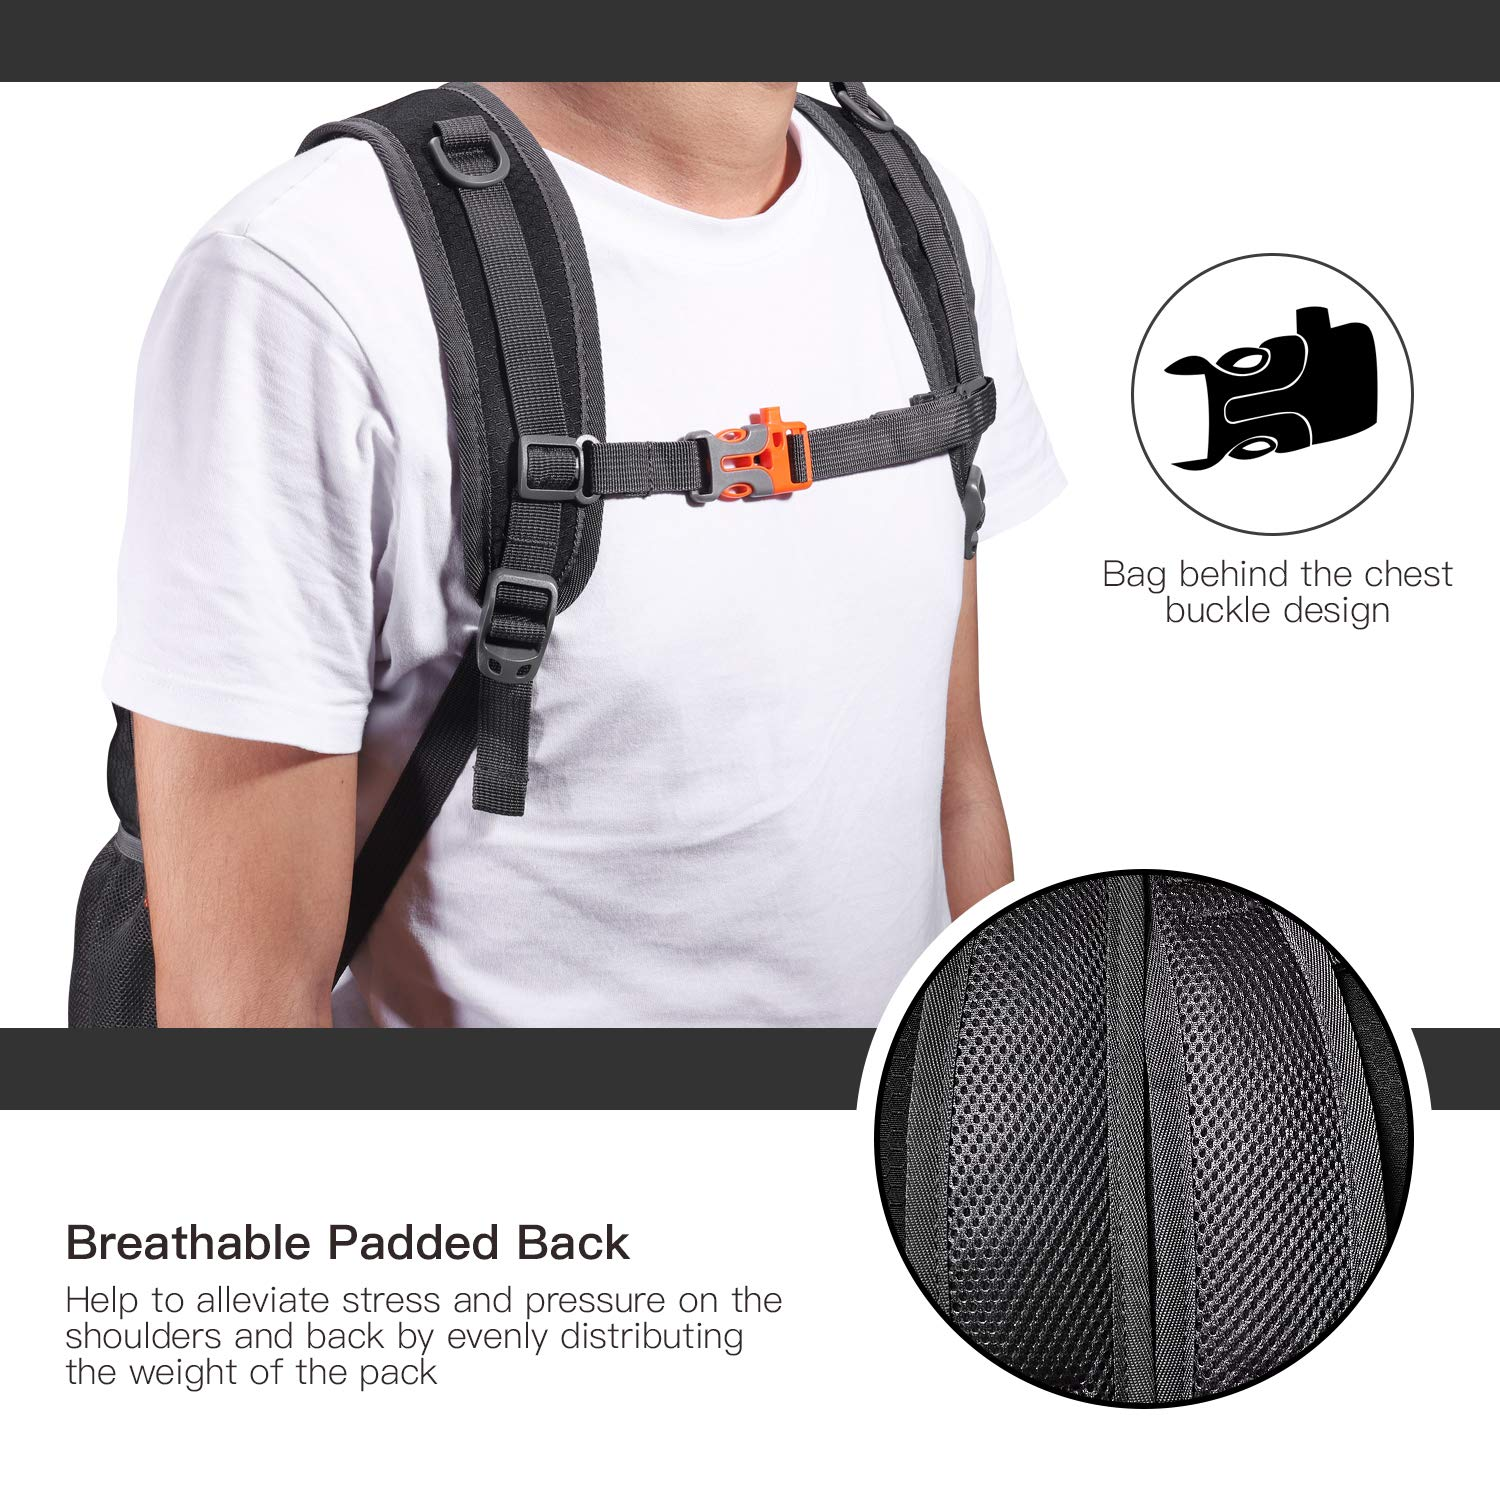 20L Packable Lightweight Backpack Hiking Daypack Foldable Ultralight Backpack Durable Water Resistant Travel Backpack RD01